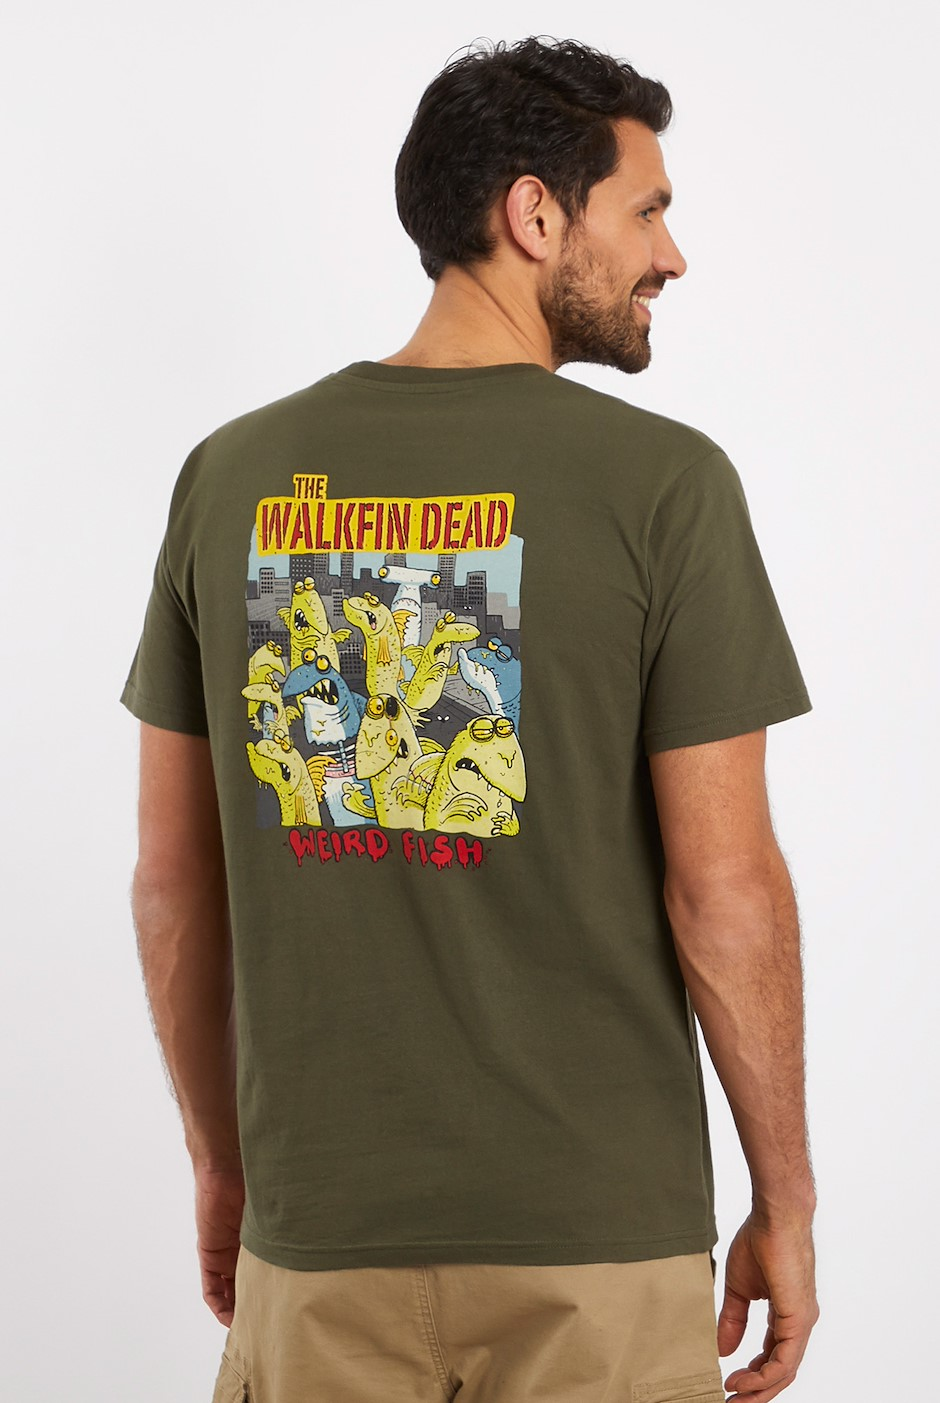 Walkfin Dead Artist T-Shirt Dark Olive